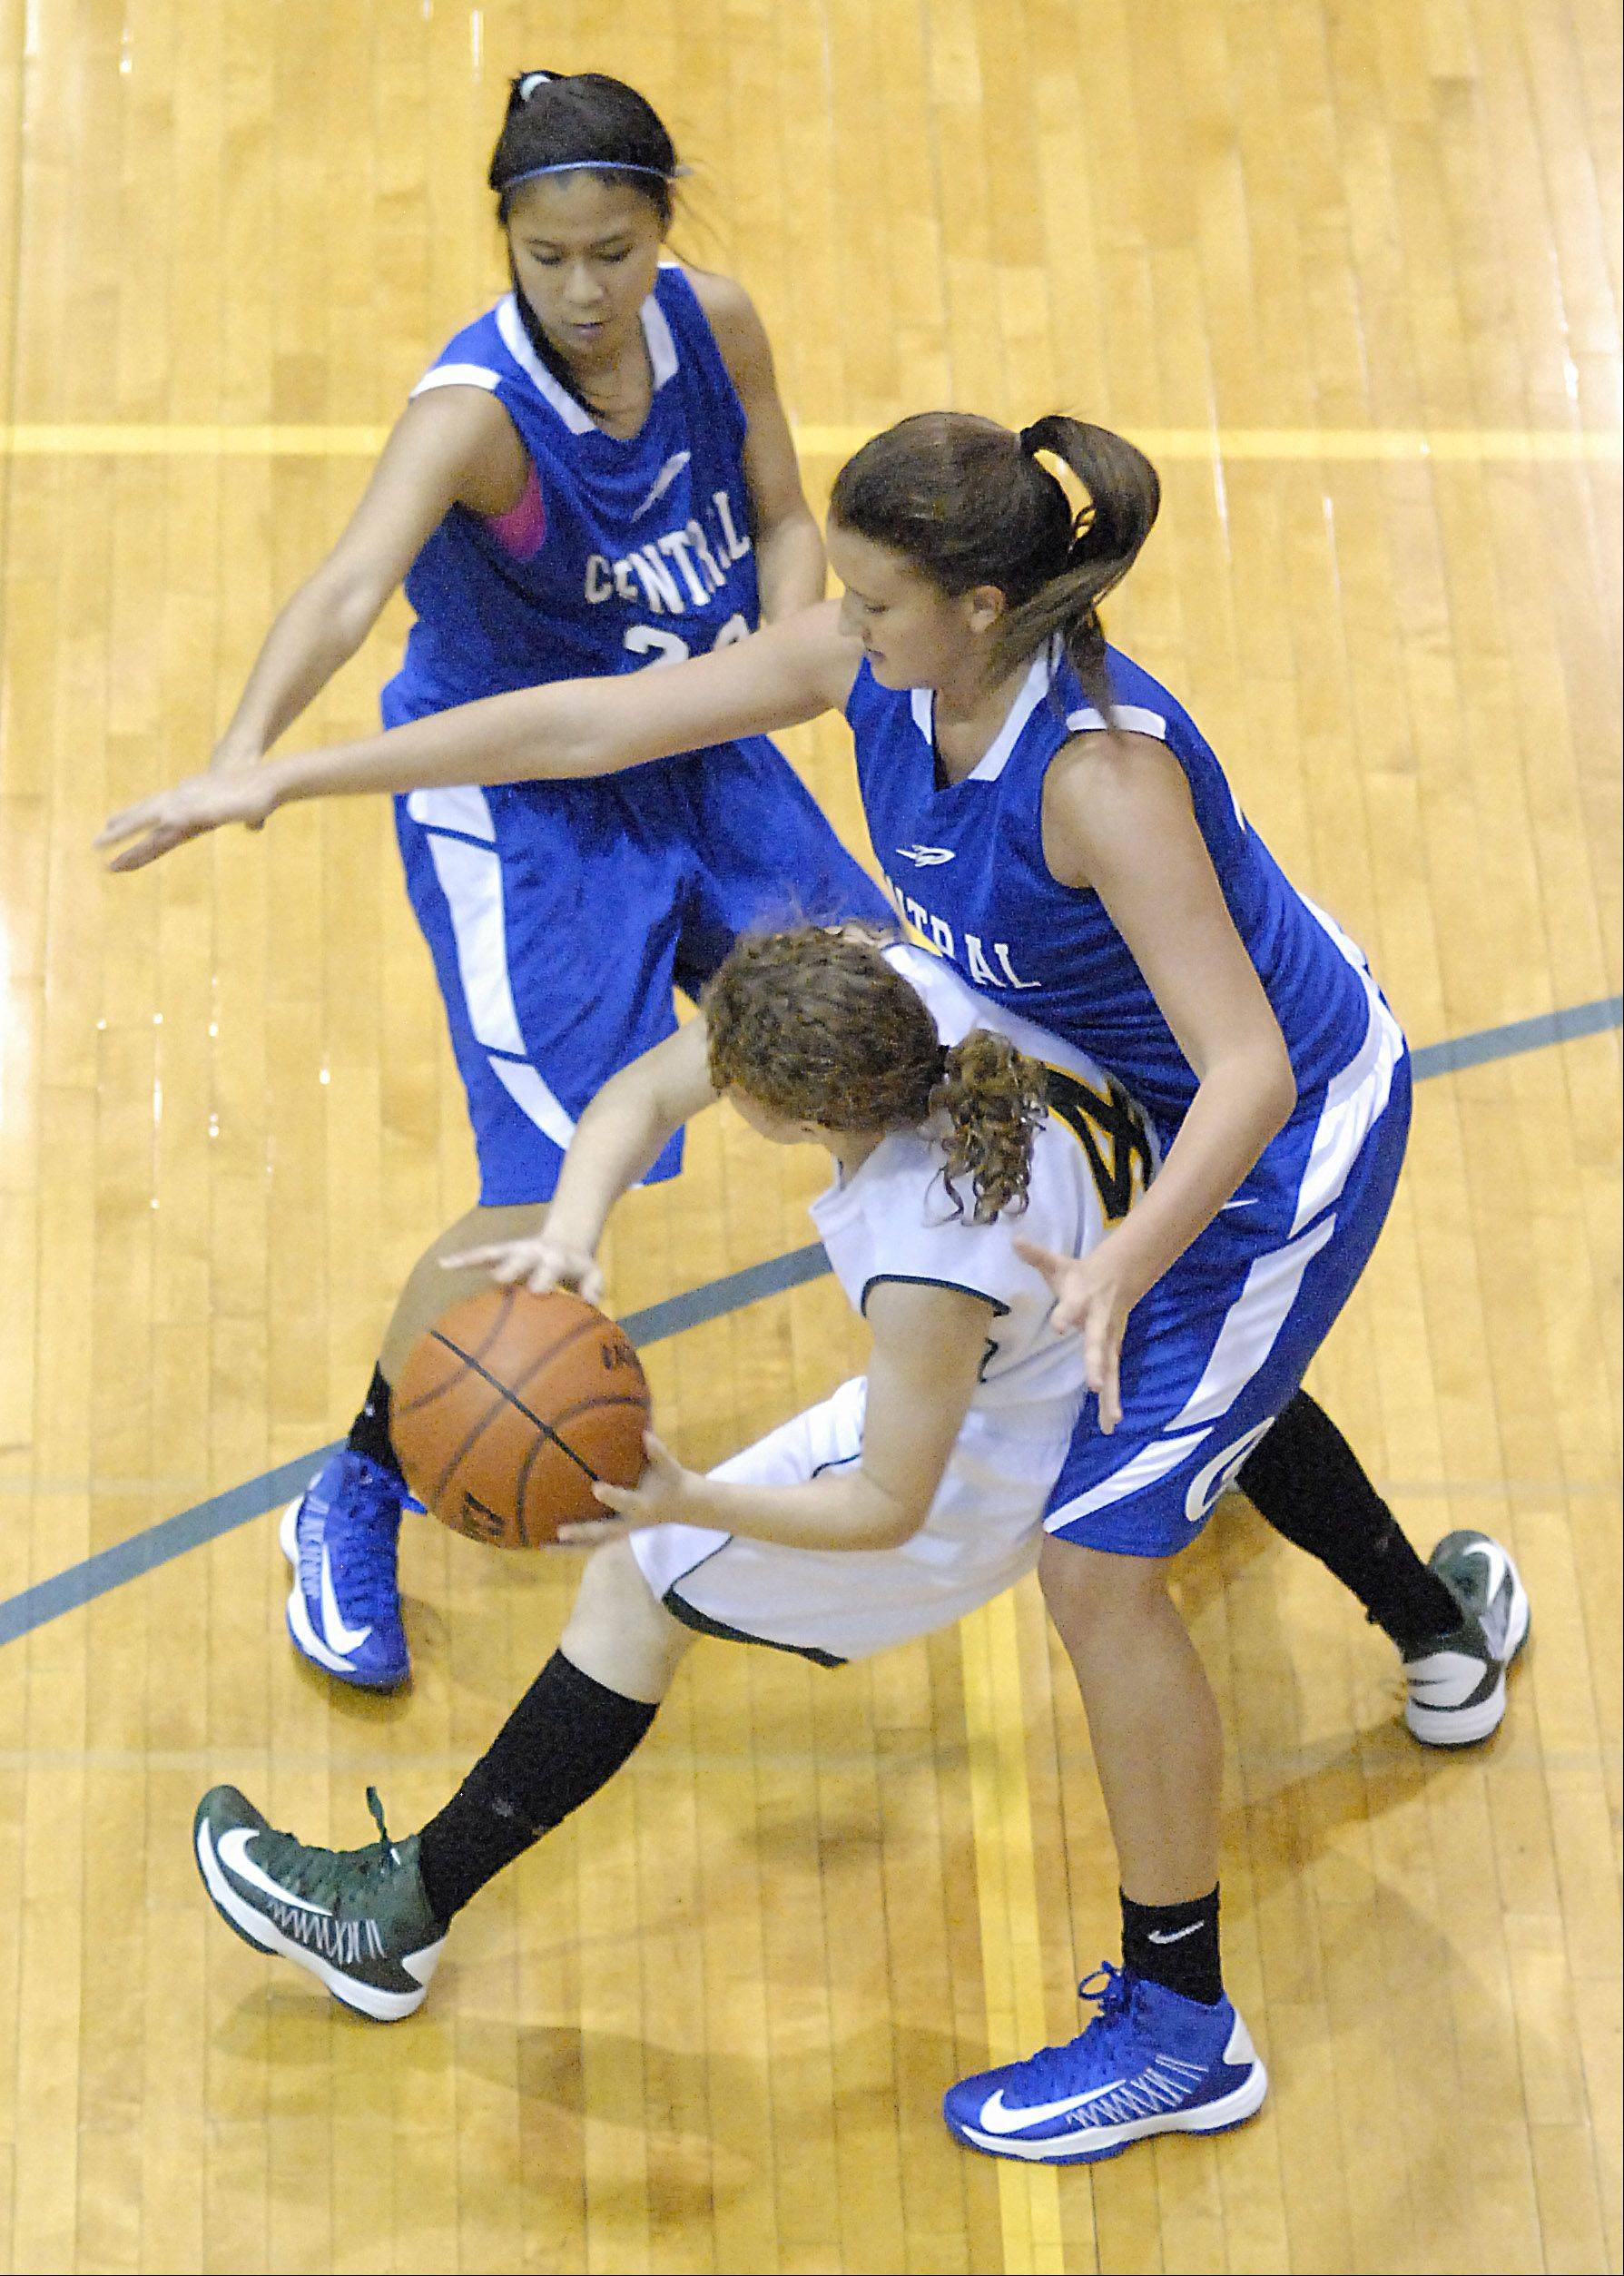 Burlington Central's Camille Dela Cruz and Alison Colby swarm Crystal Lake South's Carina Madoni Saturday in Woodstock.